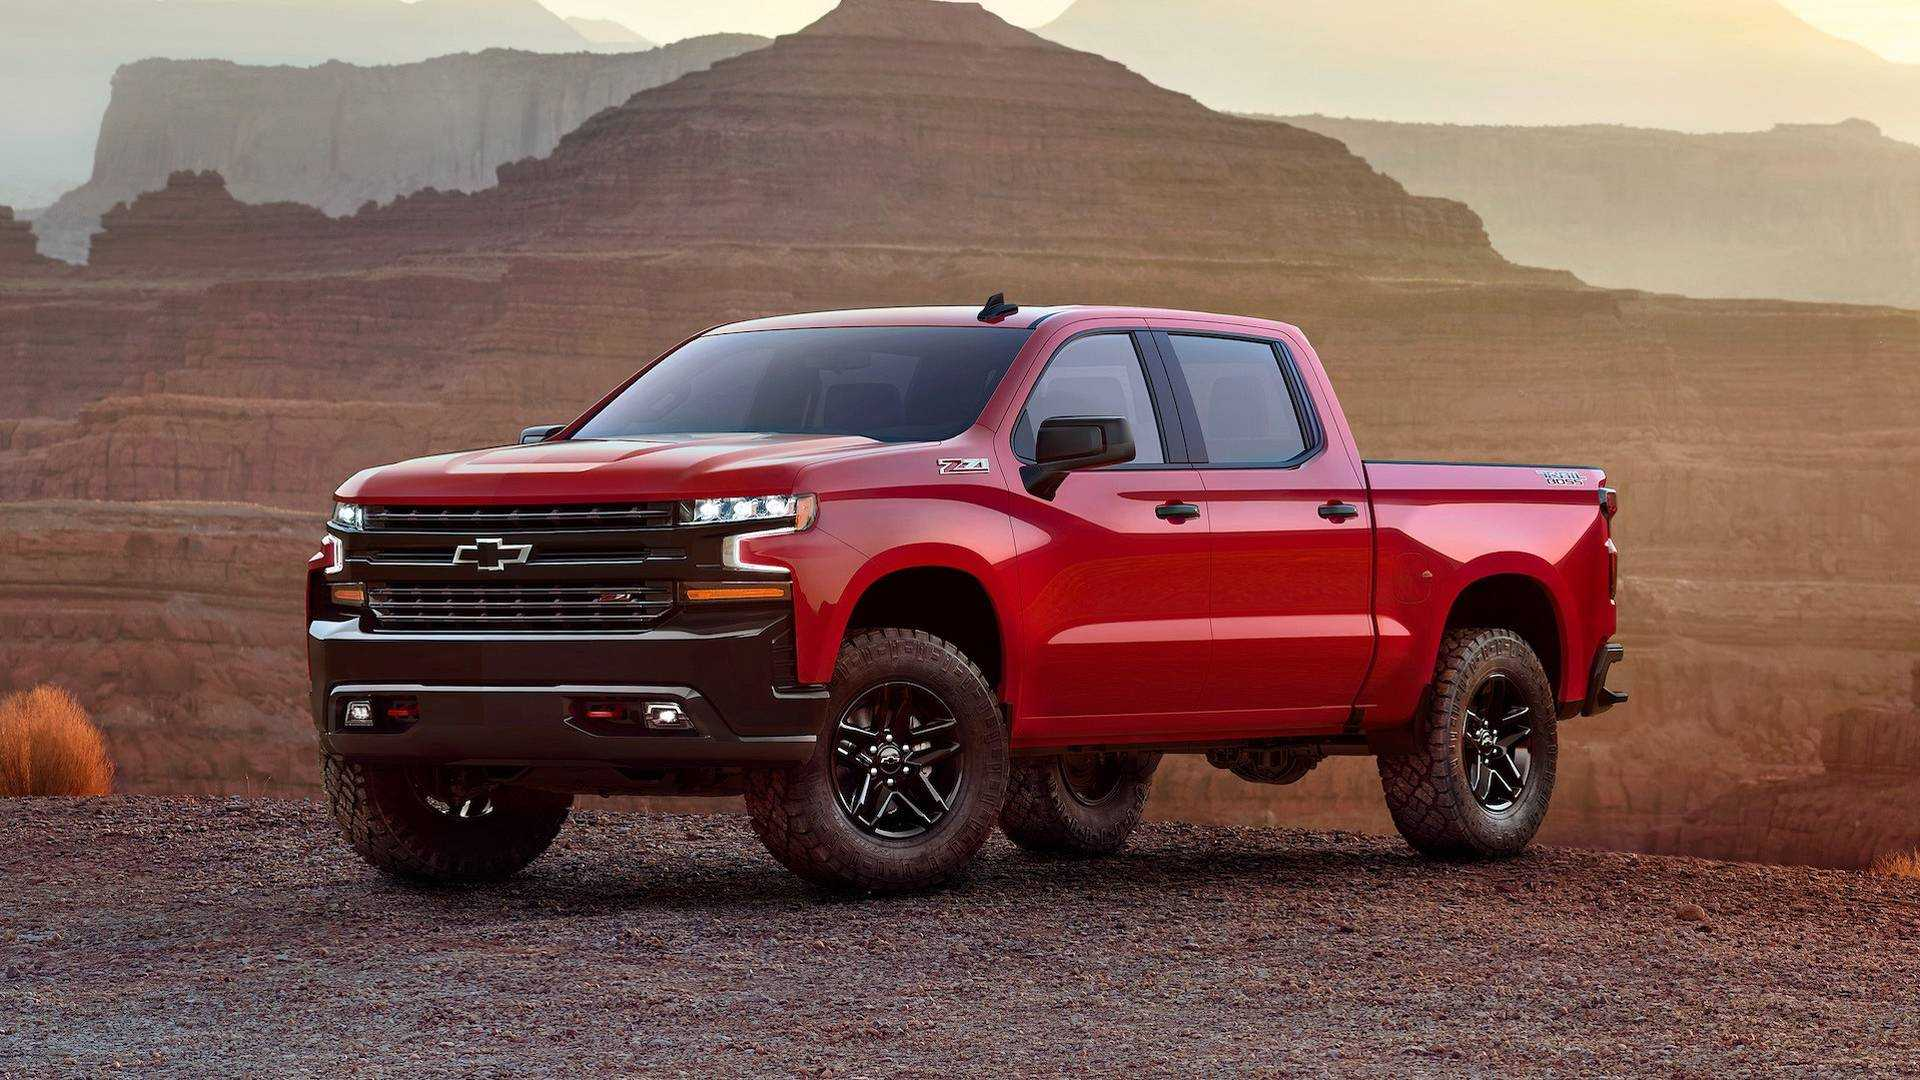 GM Offer To UAW Includes Electric Truck & Battery Manufacturing